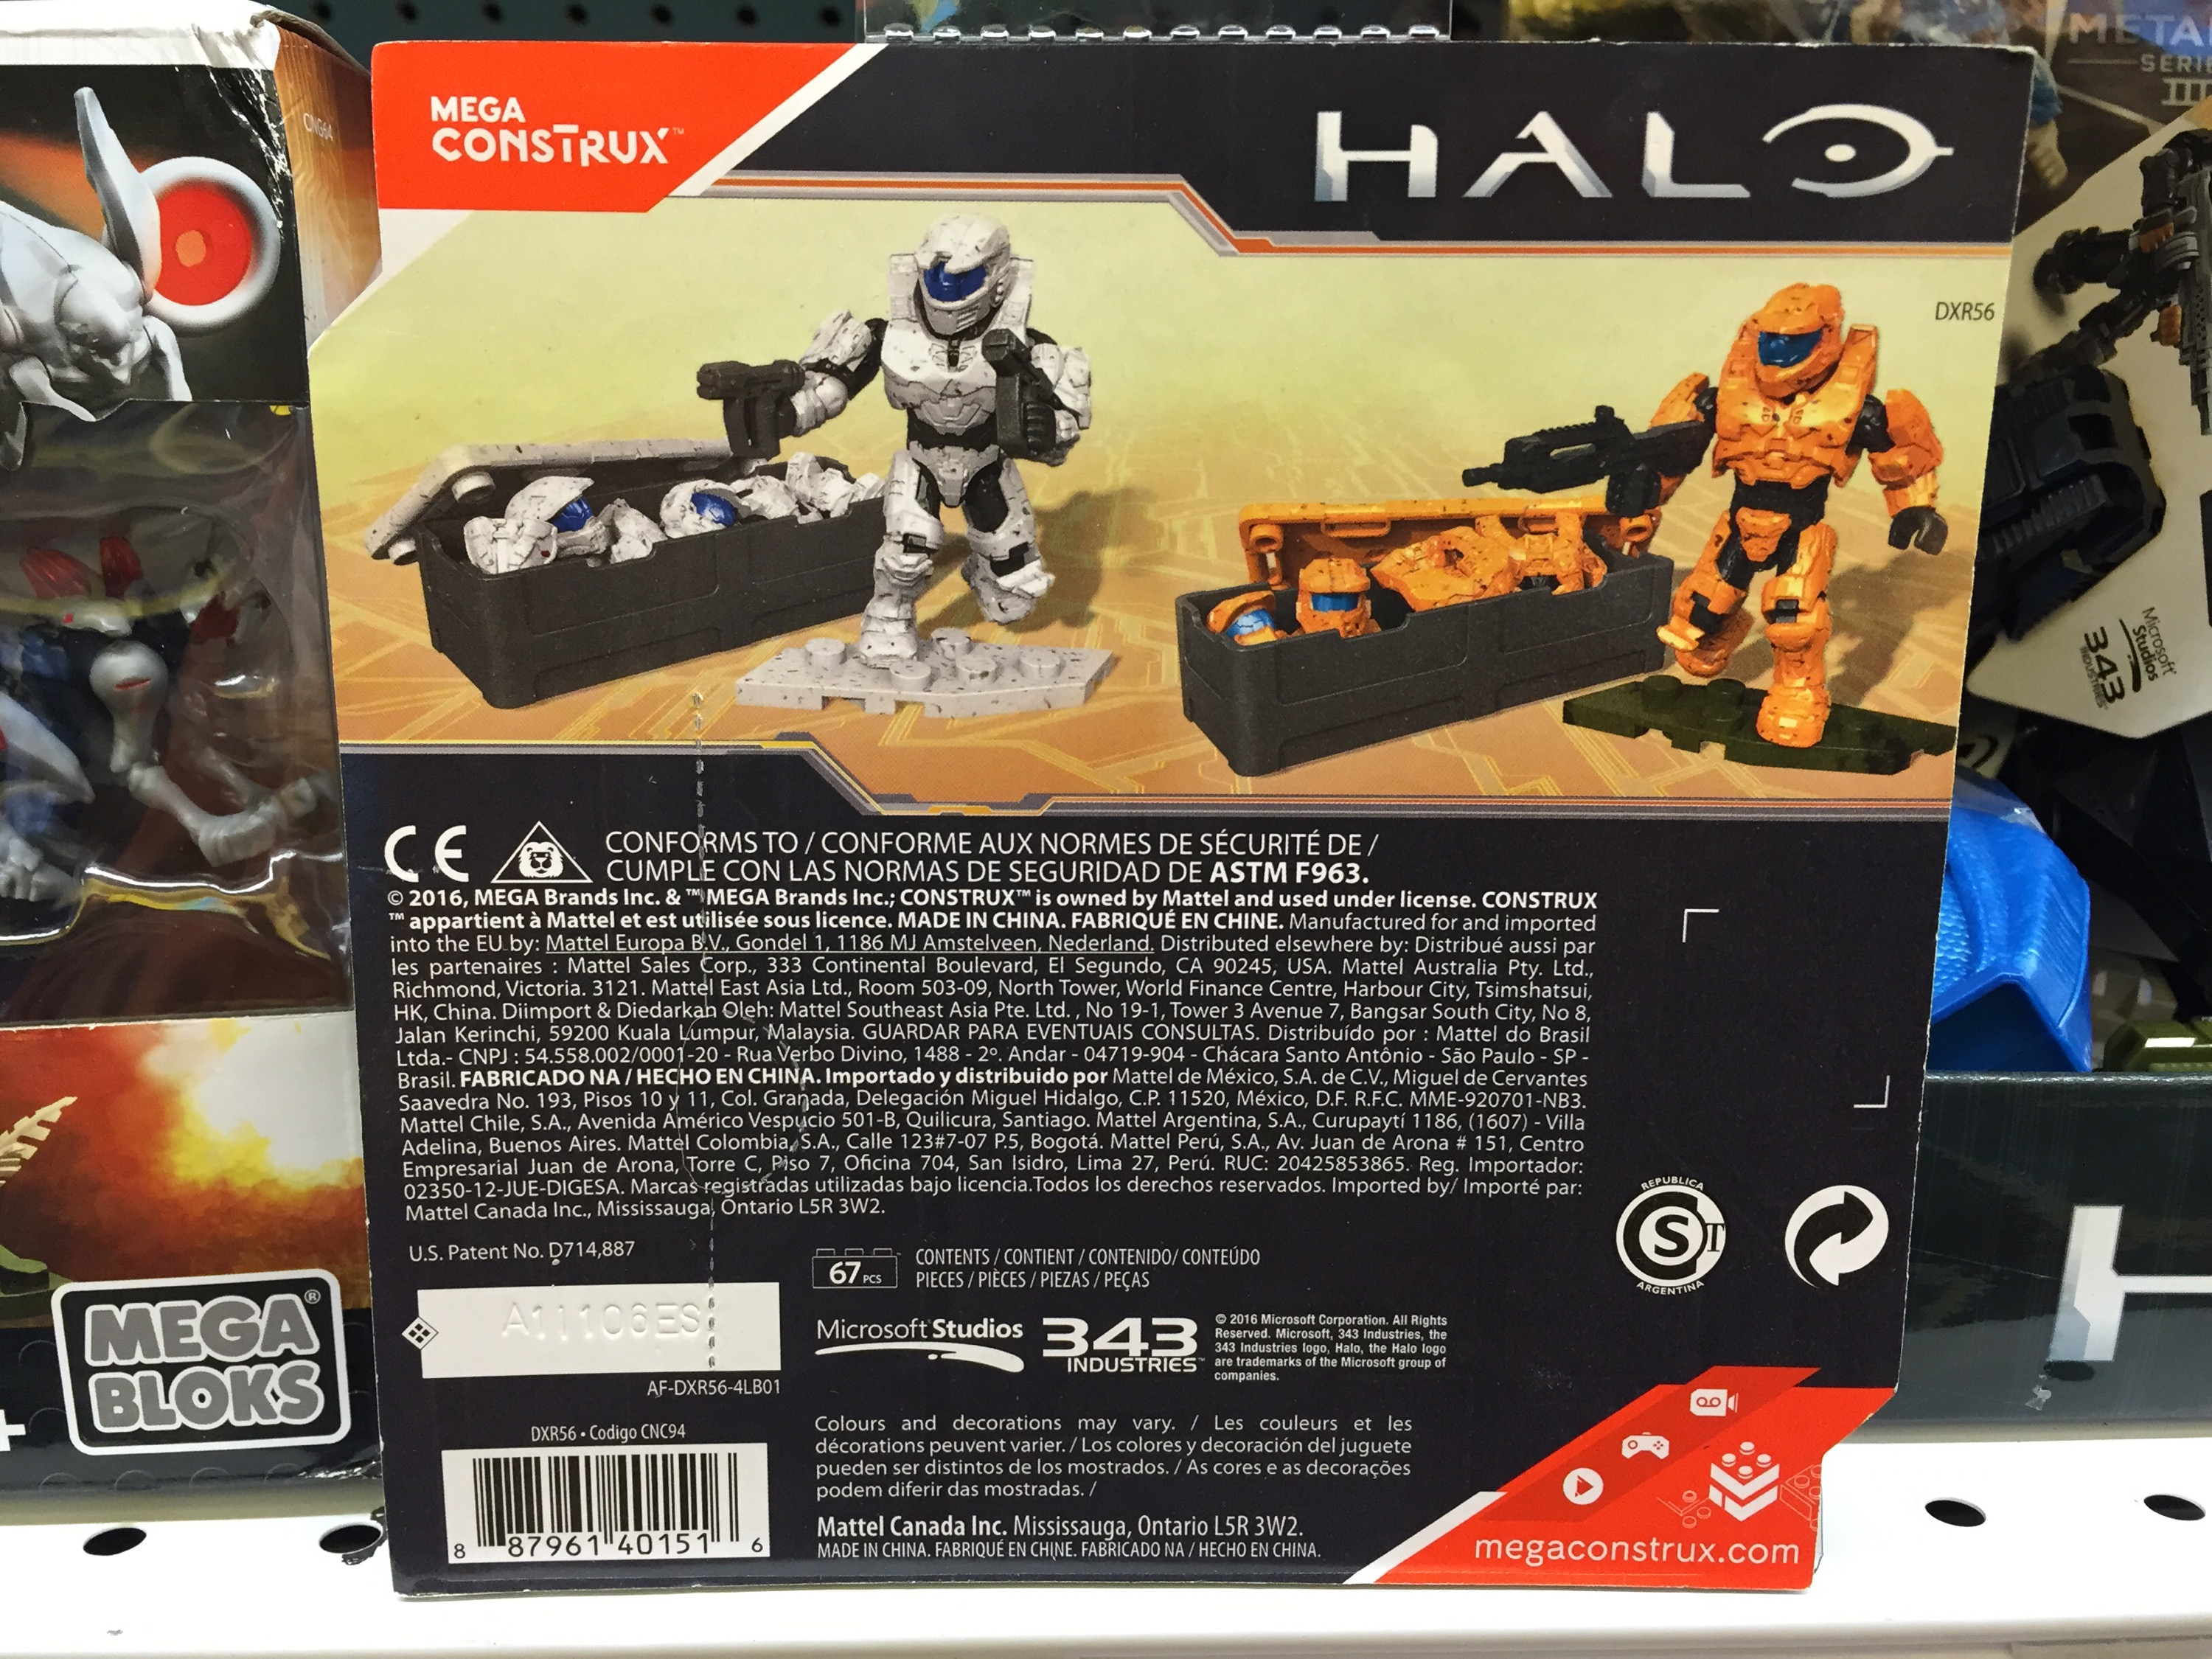 Mega Construx Halo Wars 2 Brute Customizer Pack! - Gamer Toy